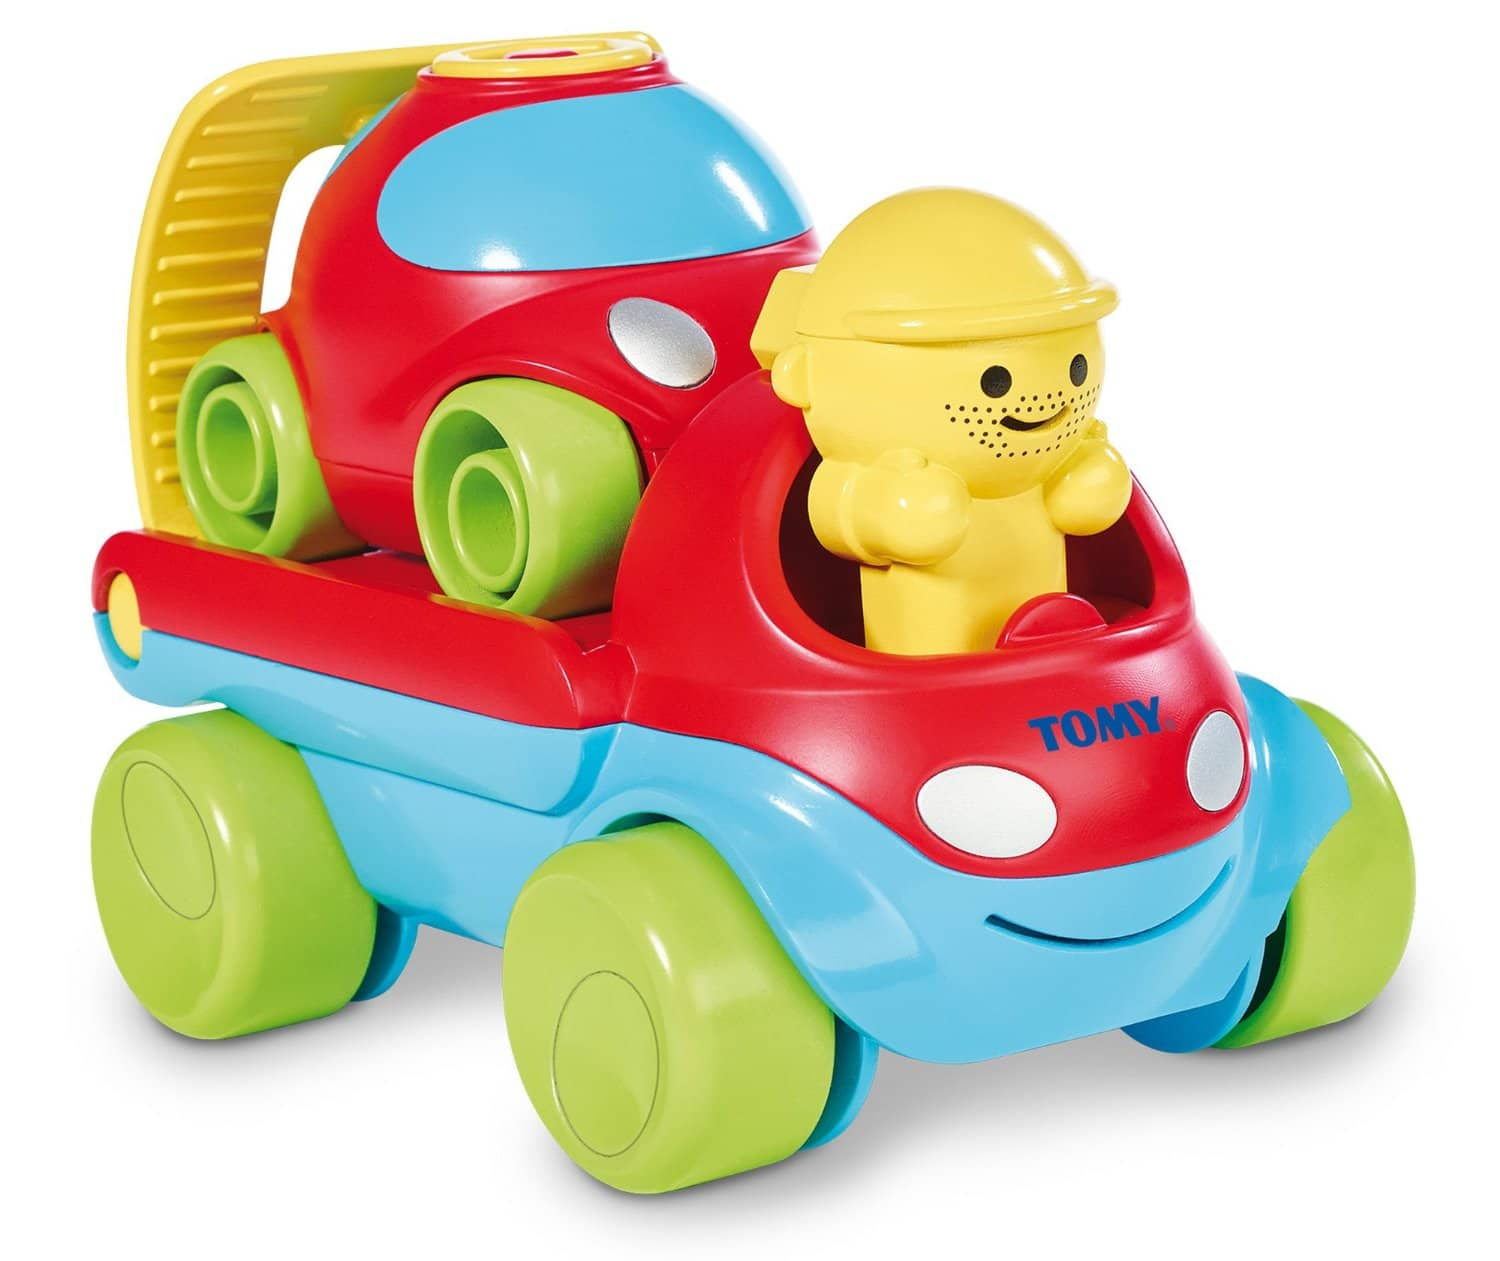 TOMY Toys: 3-in-1 Road Rescue Fix & Load Tow Truck  $8.25 & More